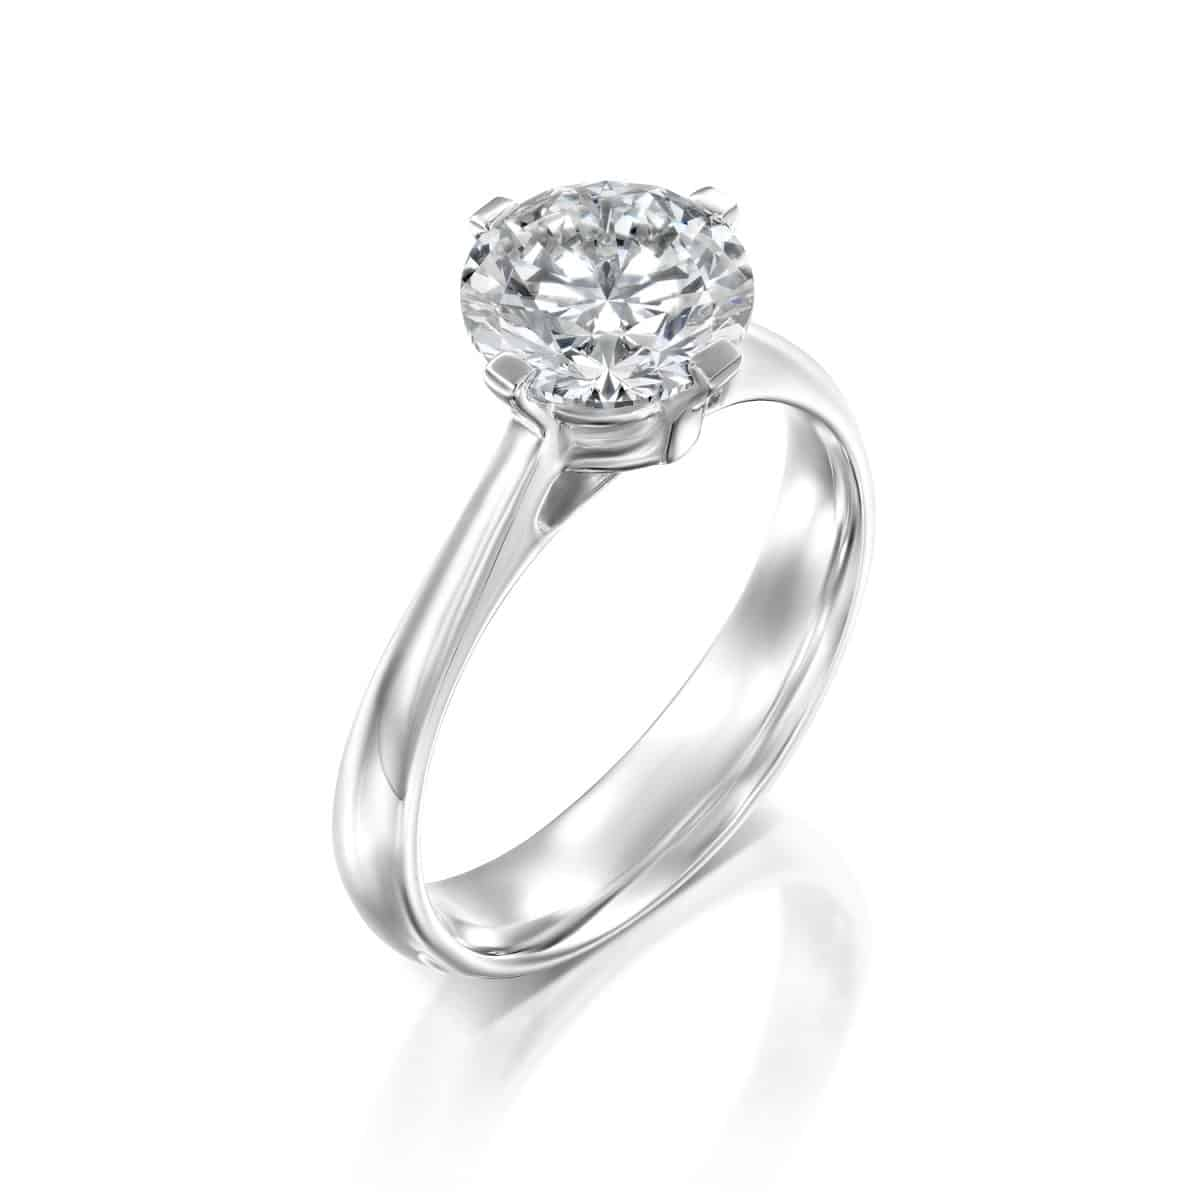 """Mary"" - Solitaire Lab Grown Diamond Engagement Ring 1.51ct. - main"